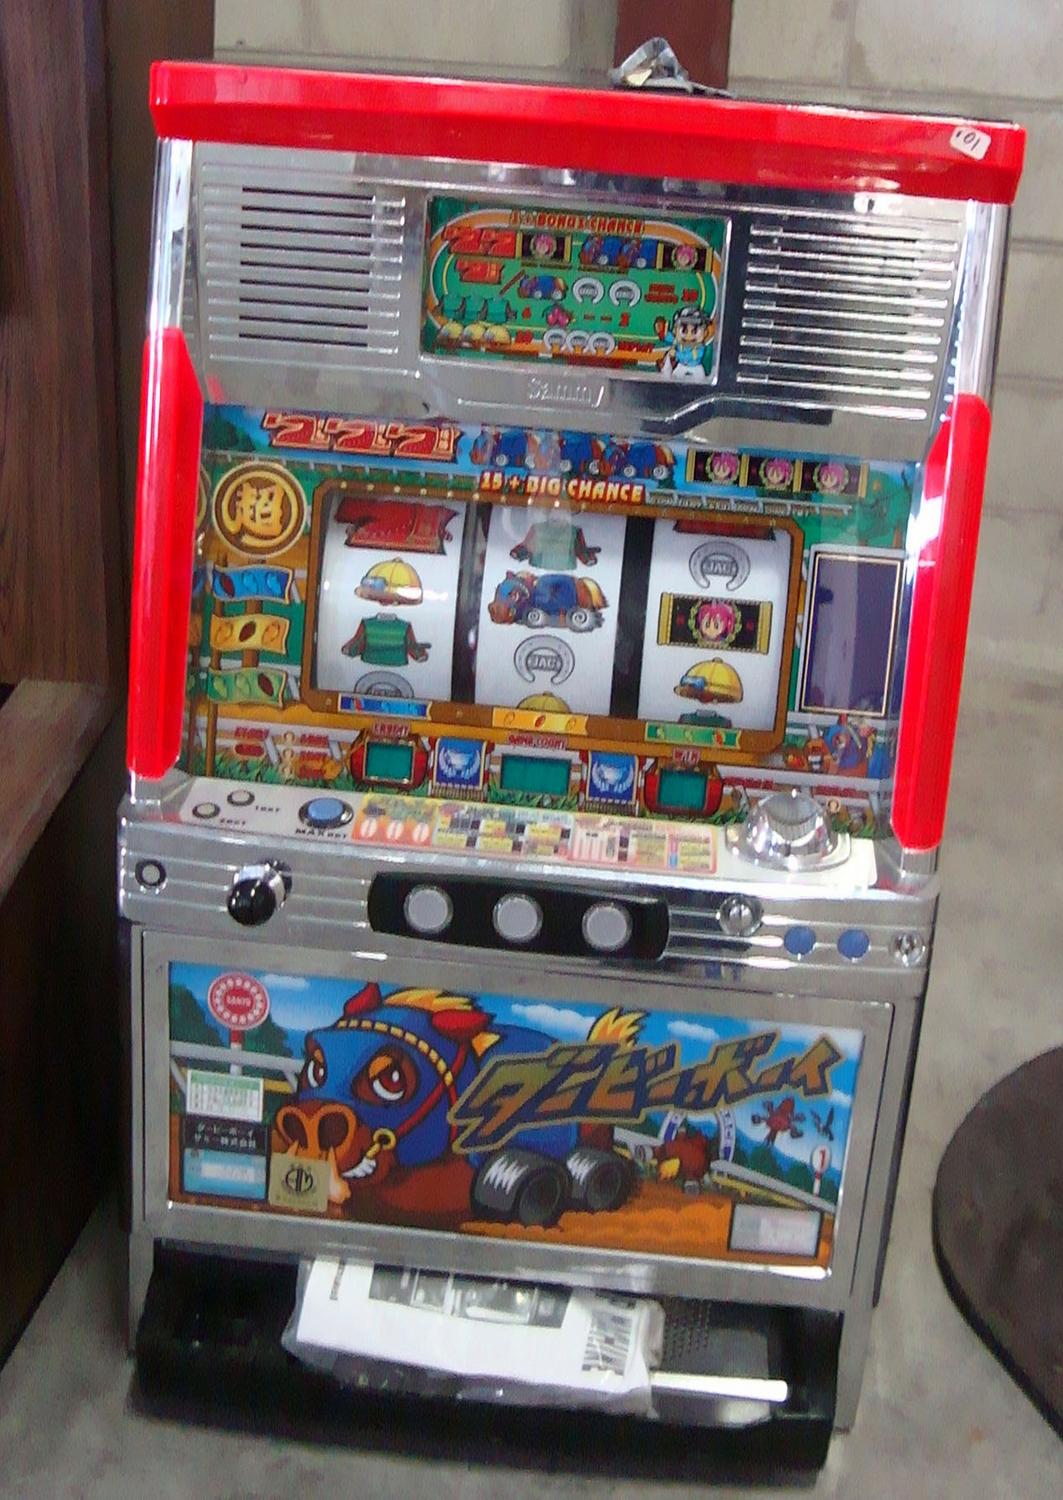 Japanese skill stop slot machine manual